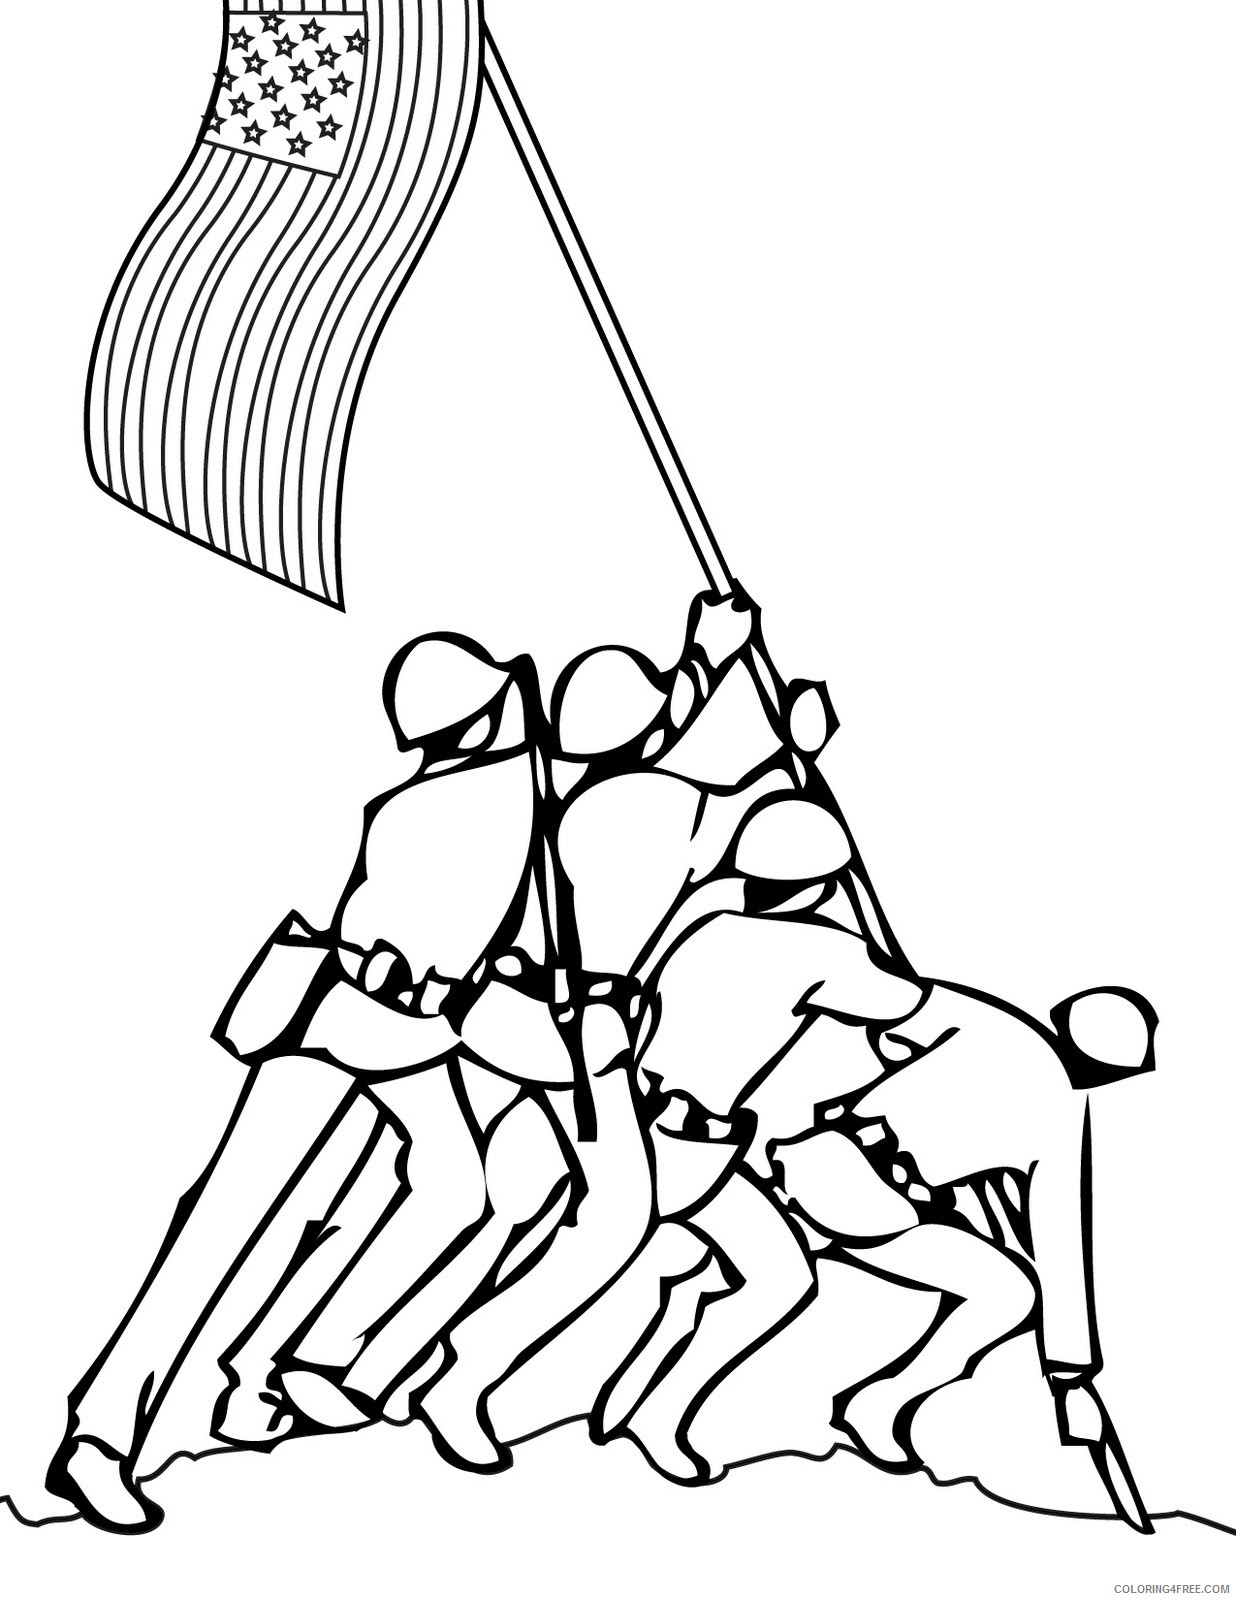 veterans day coloring pages iwo jima memorial Coloring4free